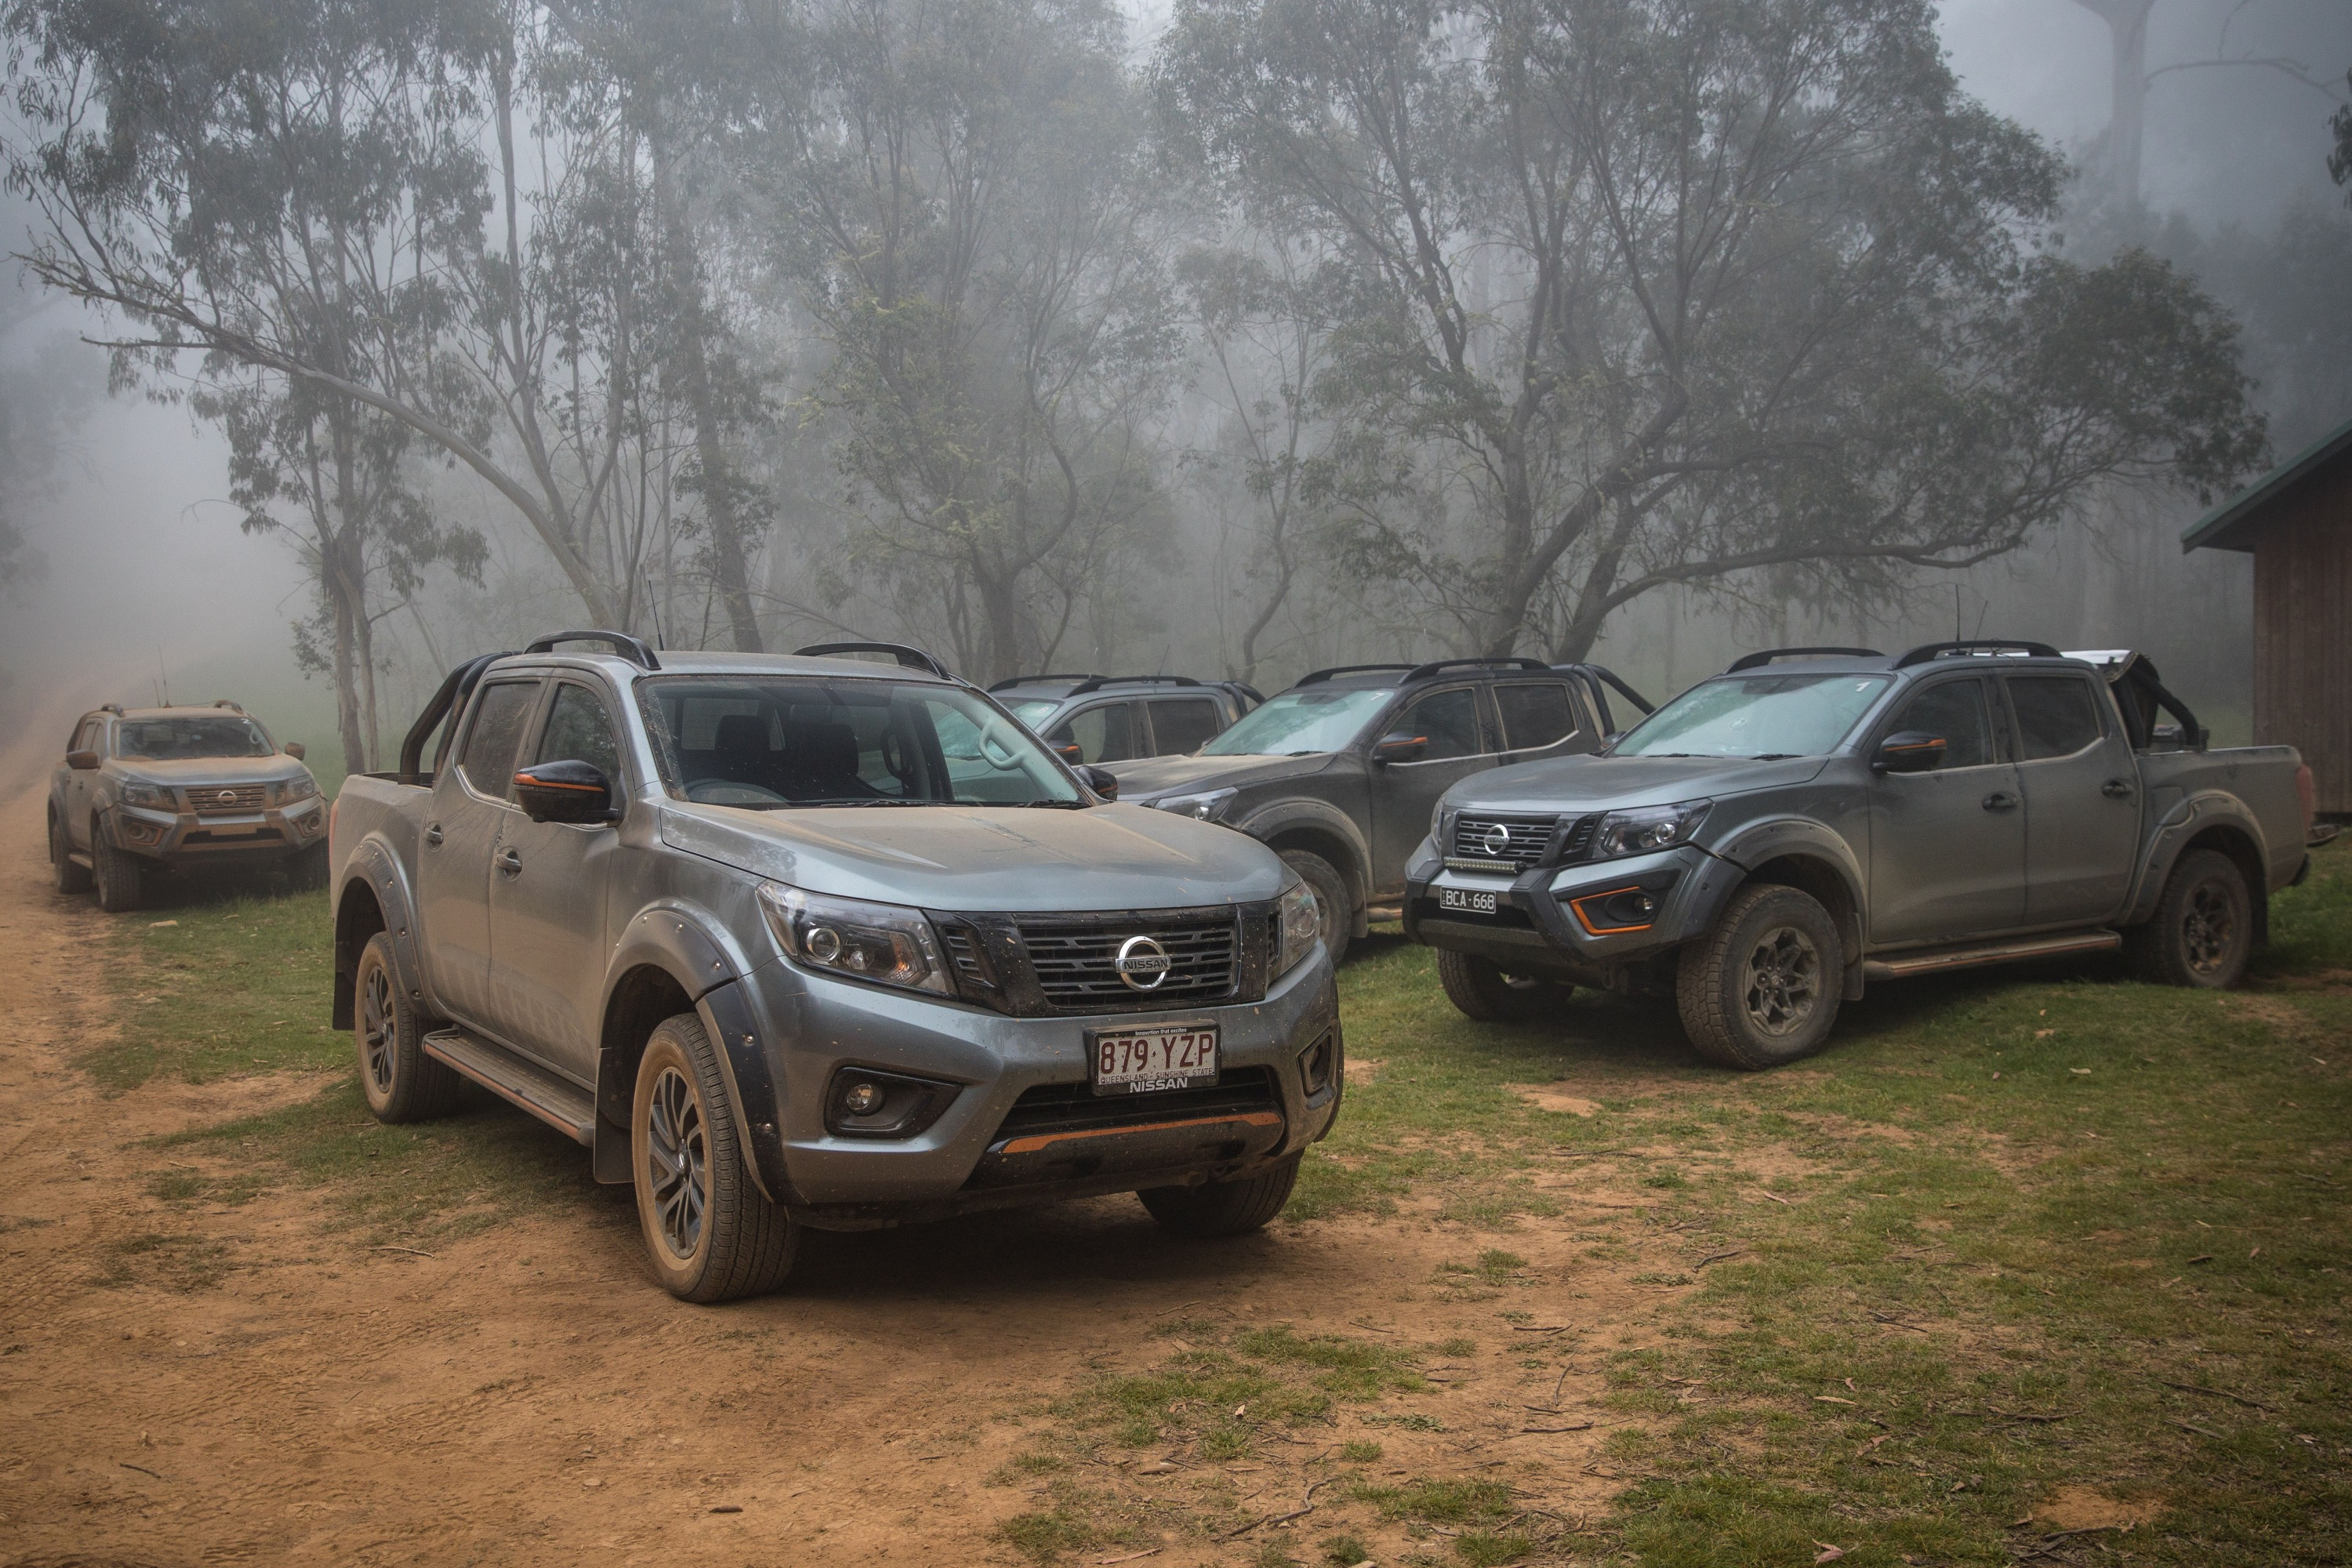 Nissan Navara N-TREK Warrior 19 group